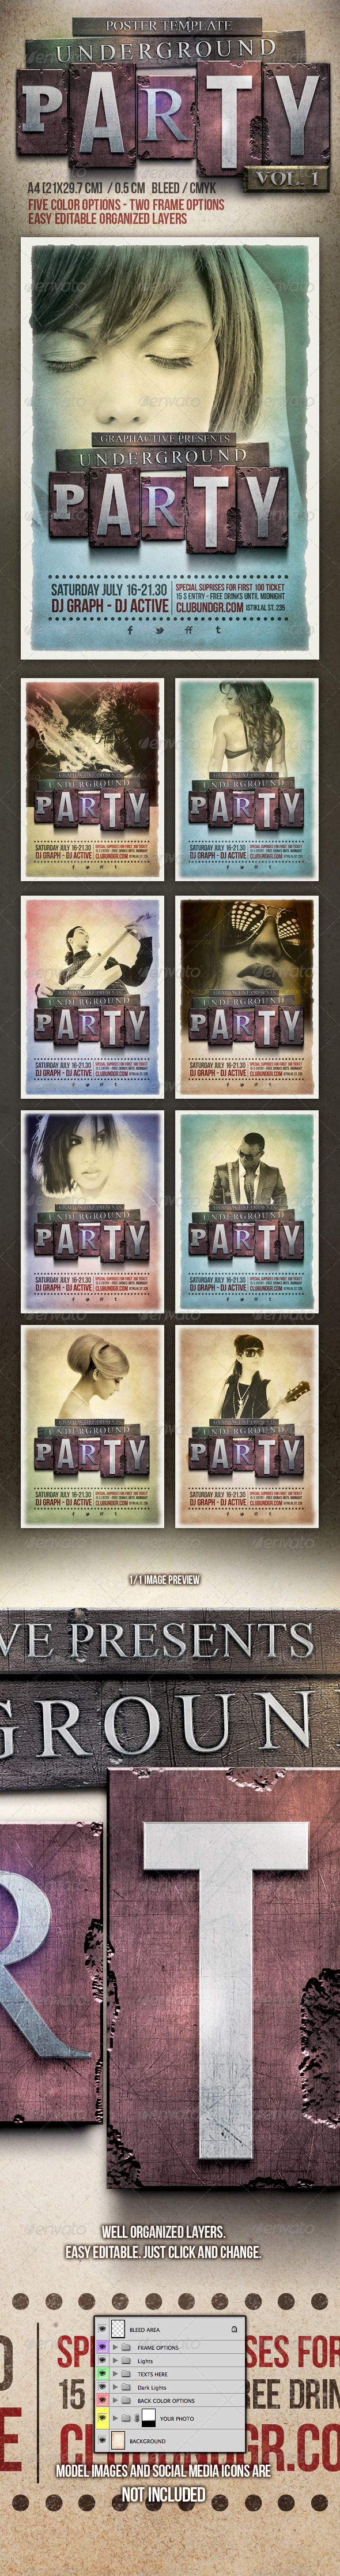 GraphicRiver Underground Party Poster Design Template 2413940